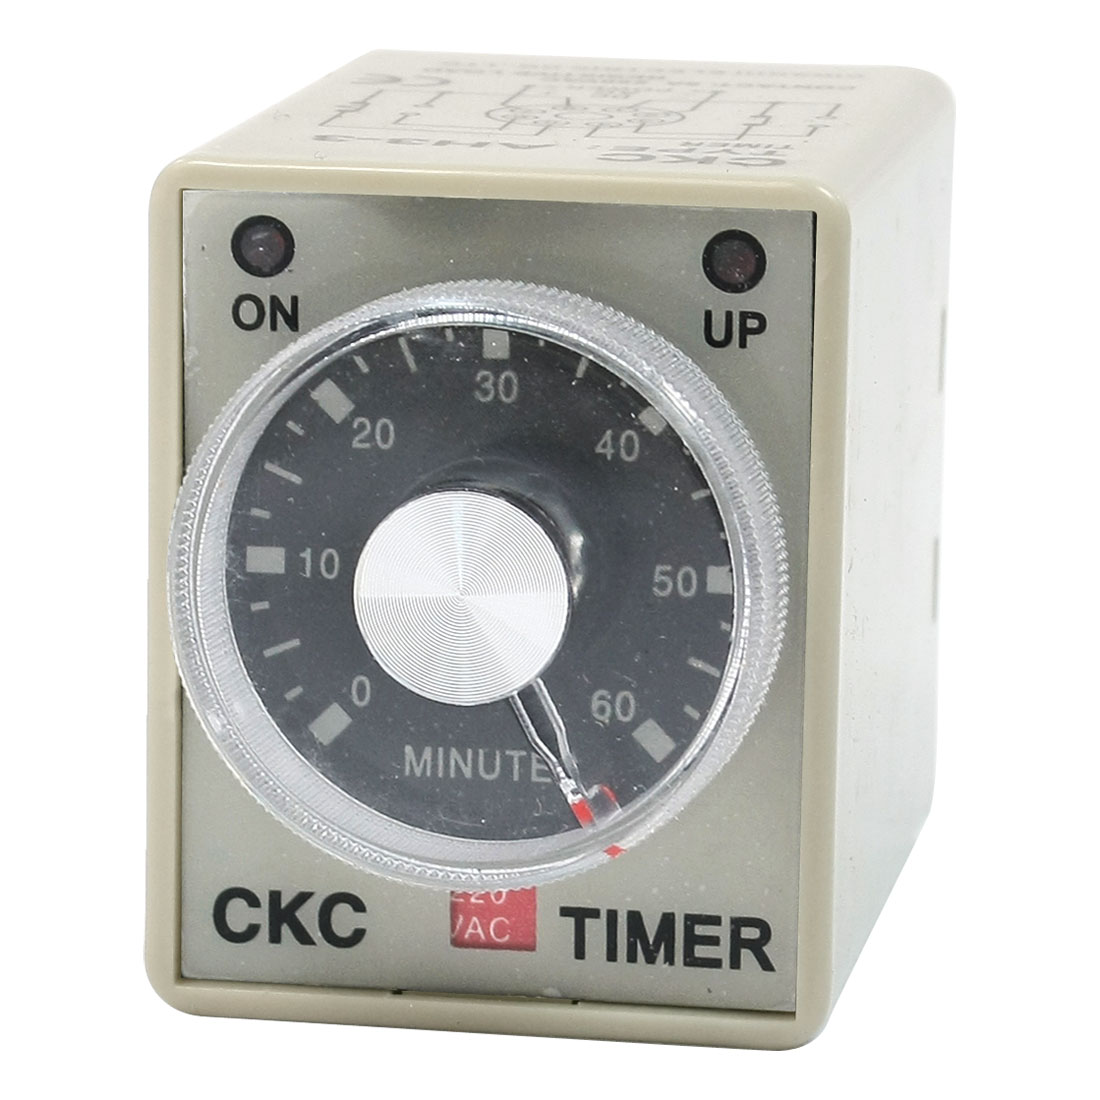 DPDT 8P DIN Rail 0-60M Timer Power on Time Timing Relay AC 220V AH3-3